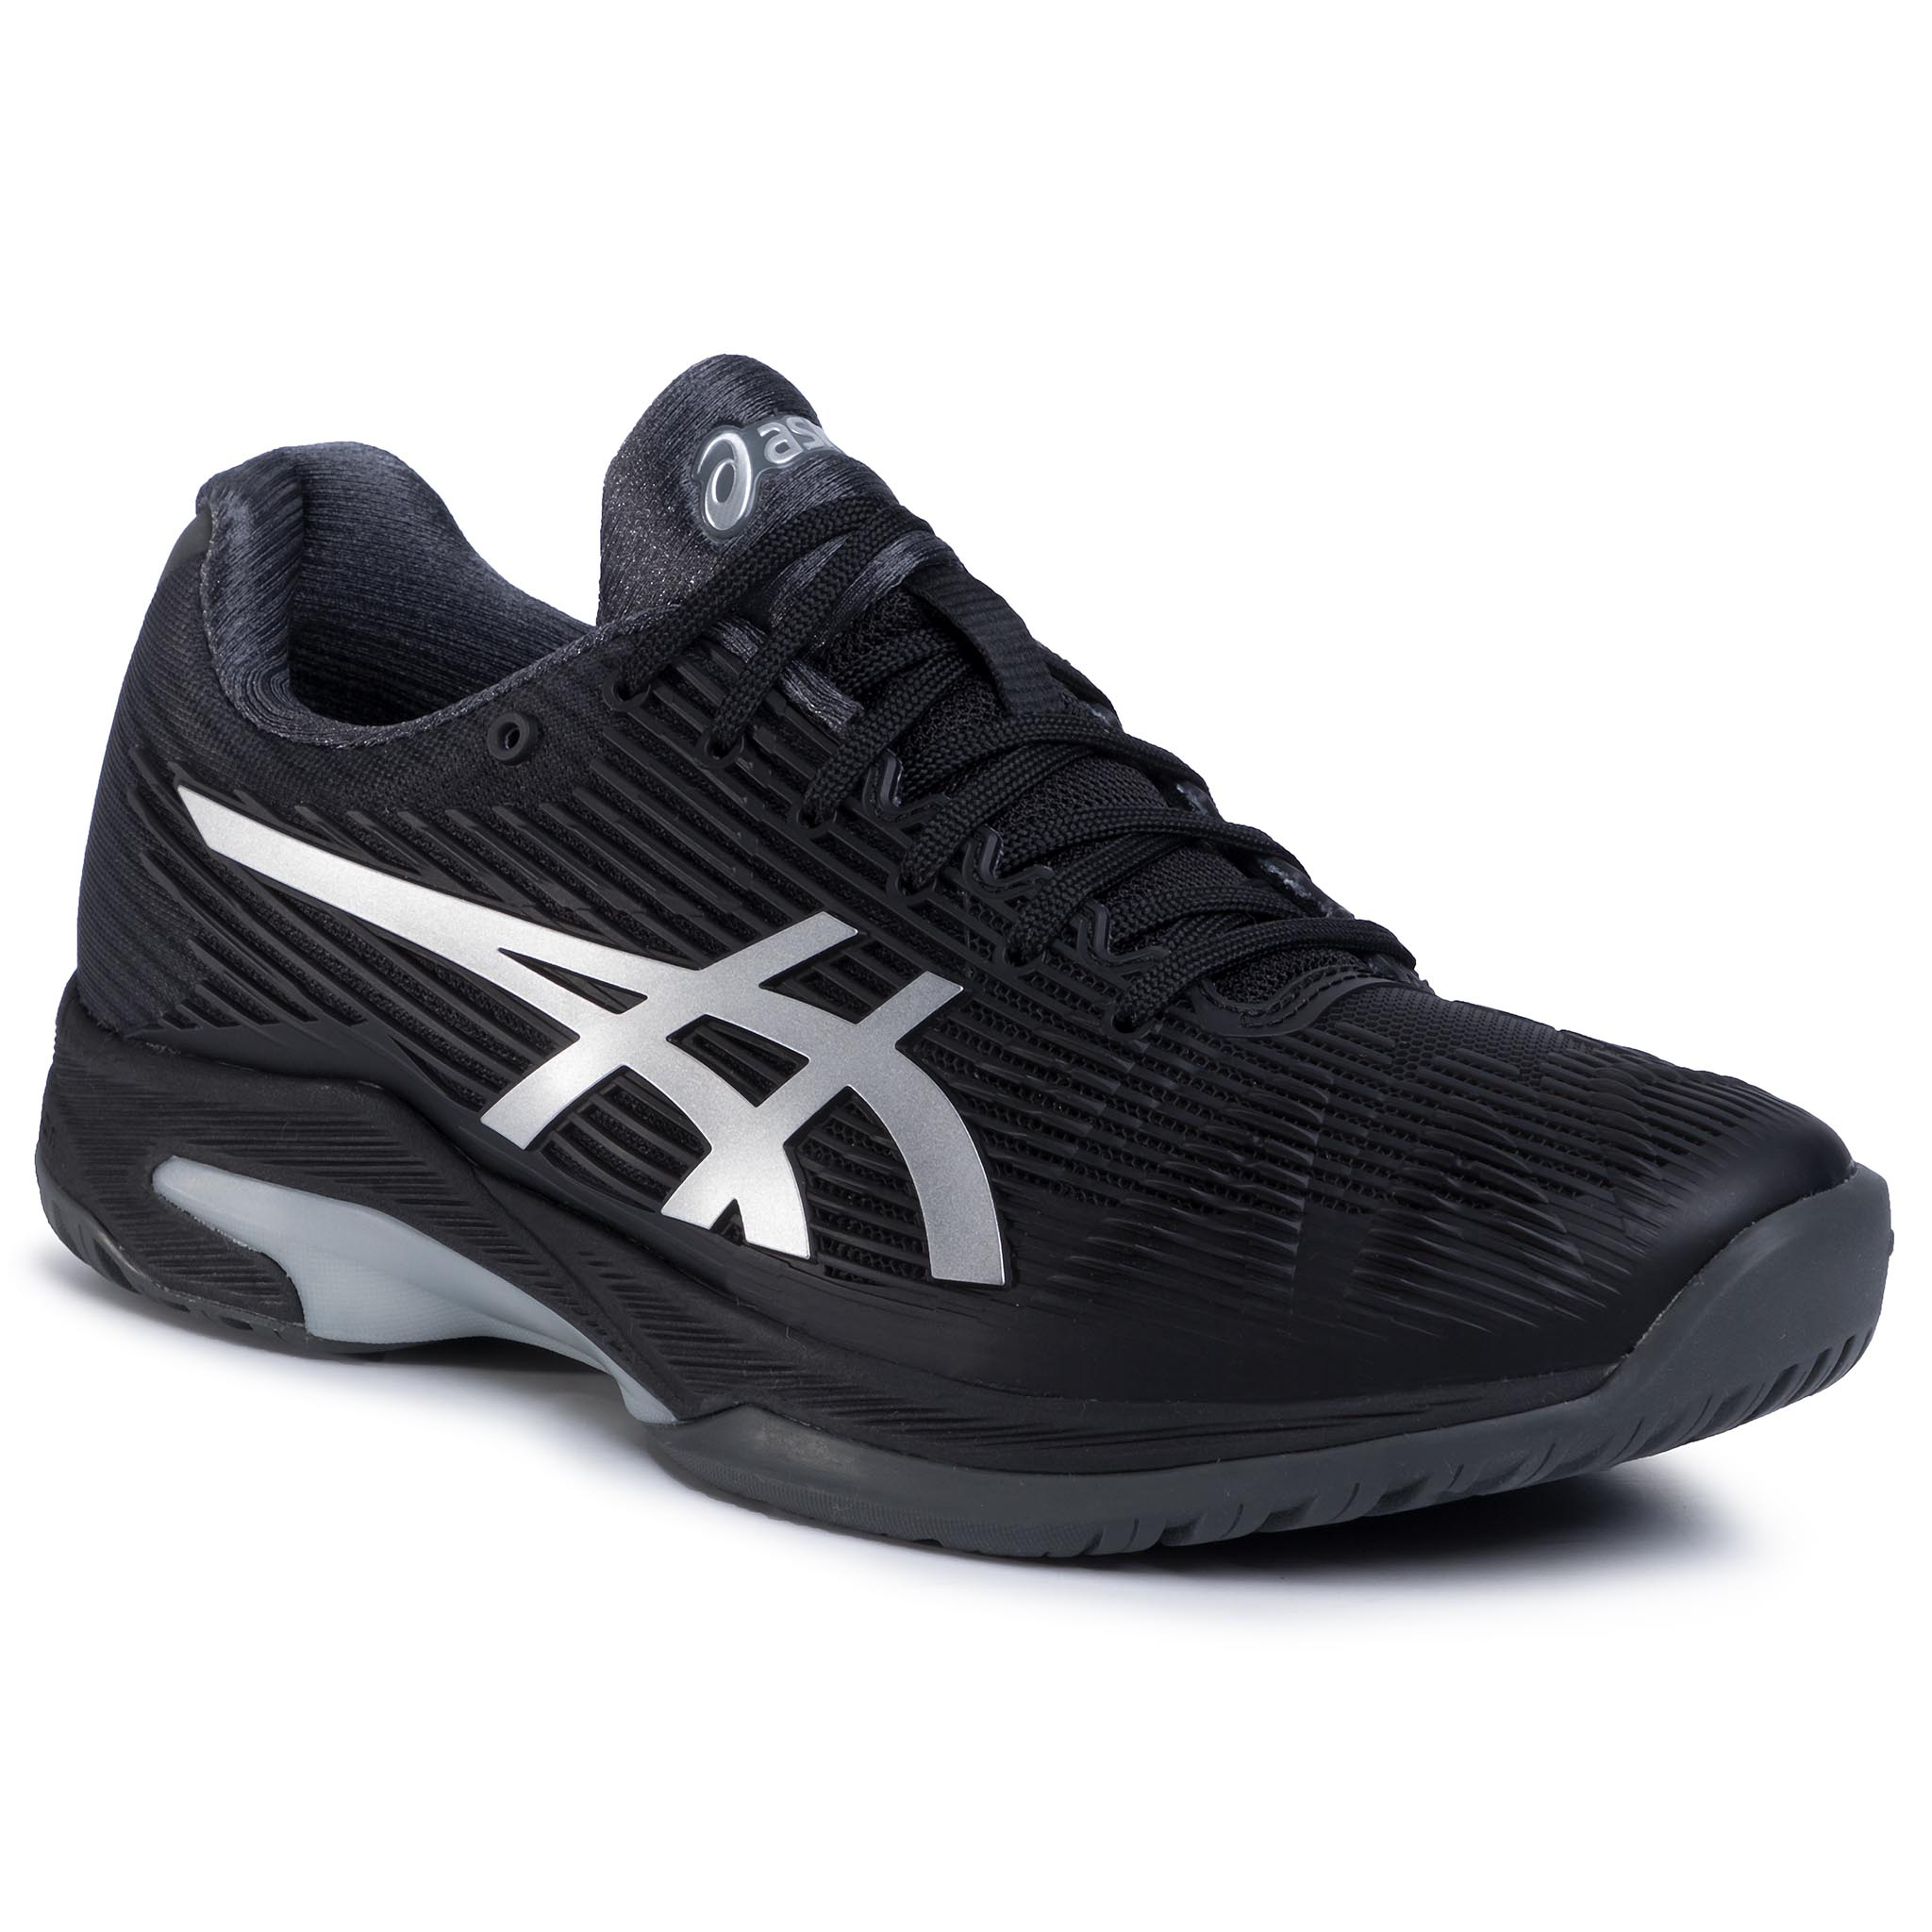 Pantofi Asics - Solution Speed Ff 1041a003 Black/Silver 001 imagine epantofi.ro 2021